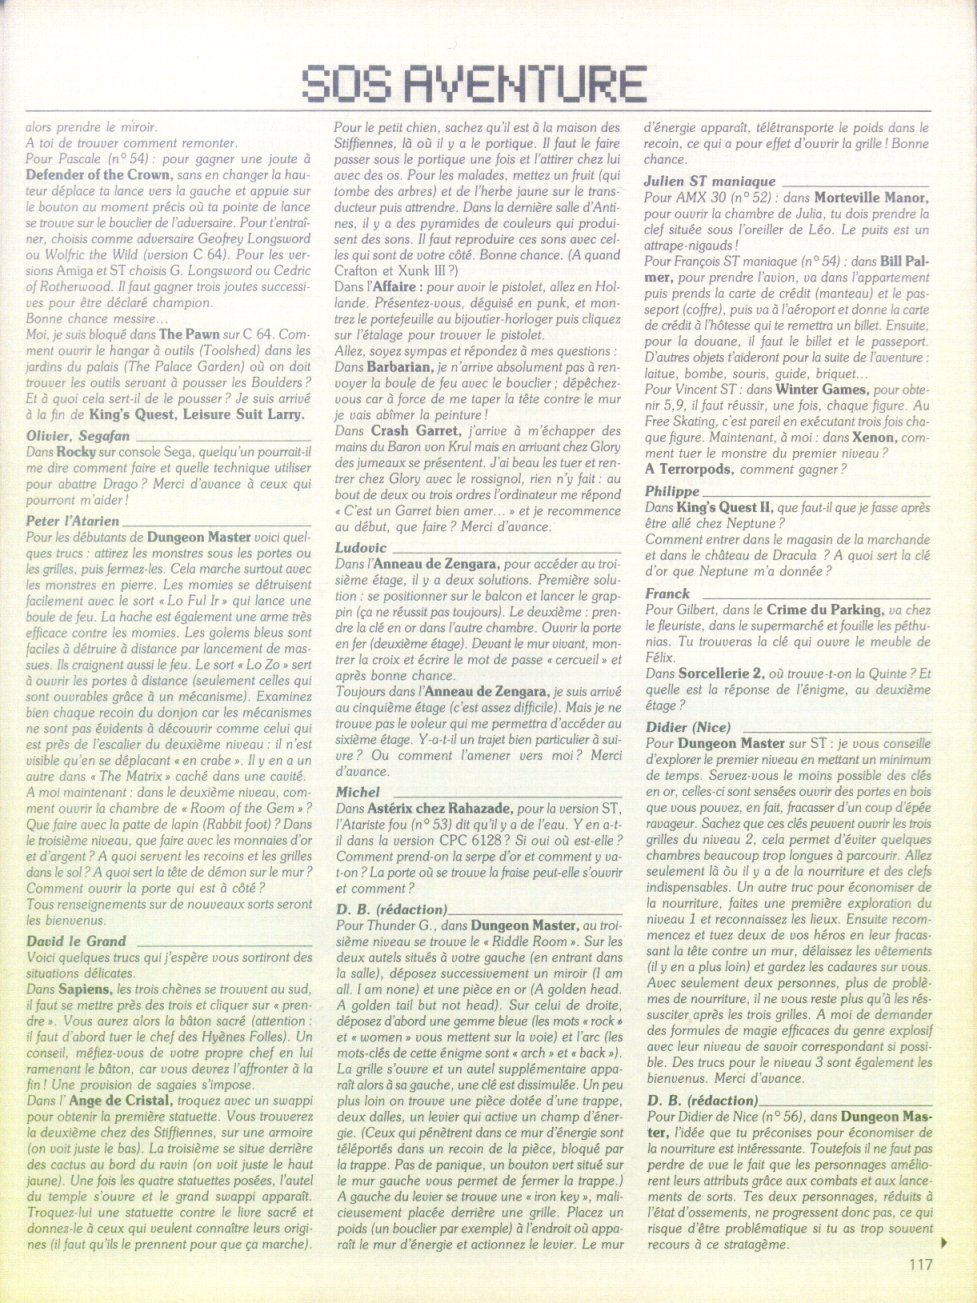 Dungeon Master Hints published in French magazine 'Tilt', Issue#56, July-August 1988, Page 117